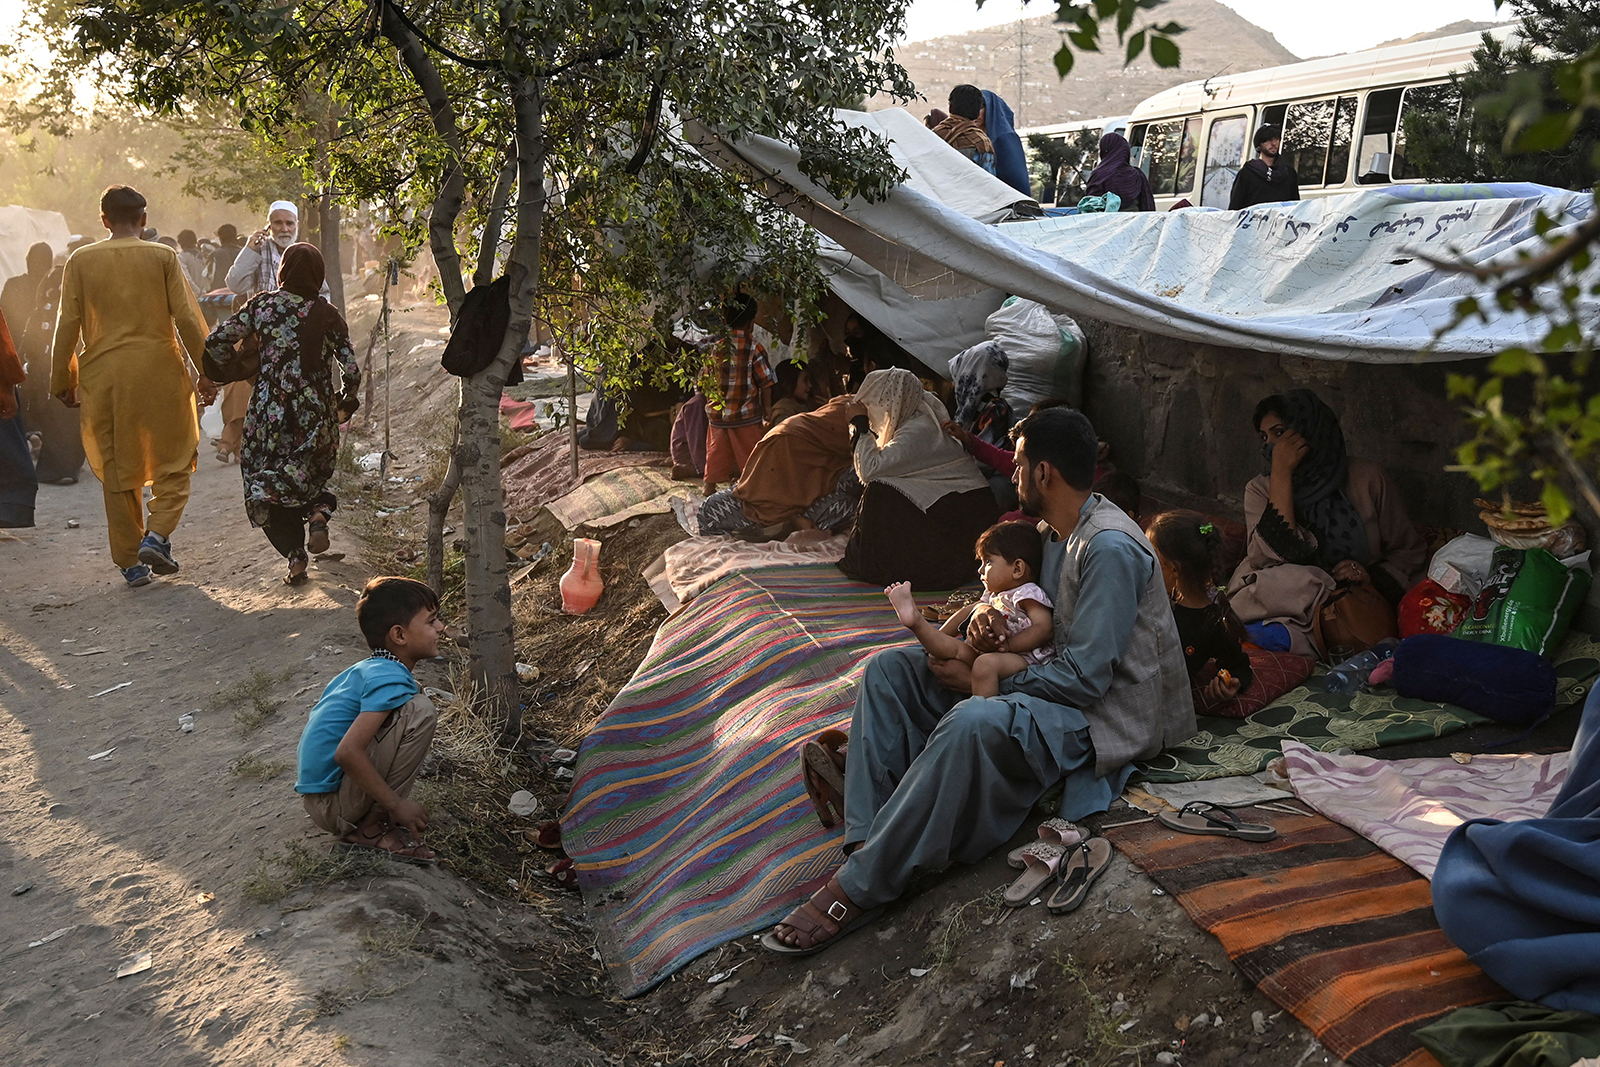 Internally displaced Afghan families, who fled from Kunduz, Takhar and Baghlan province due to battles between Taliban and Afghan security forces, sit in front of their temporary tents at Sara-e-Shamali in Kabul on August 11.